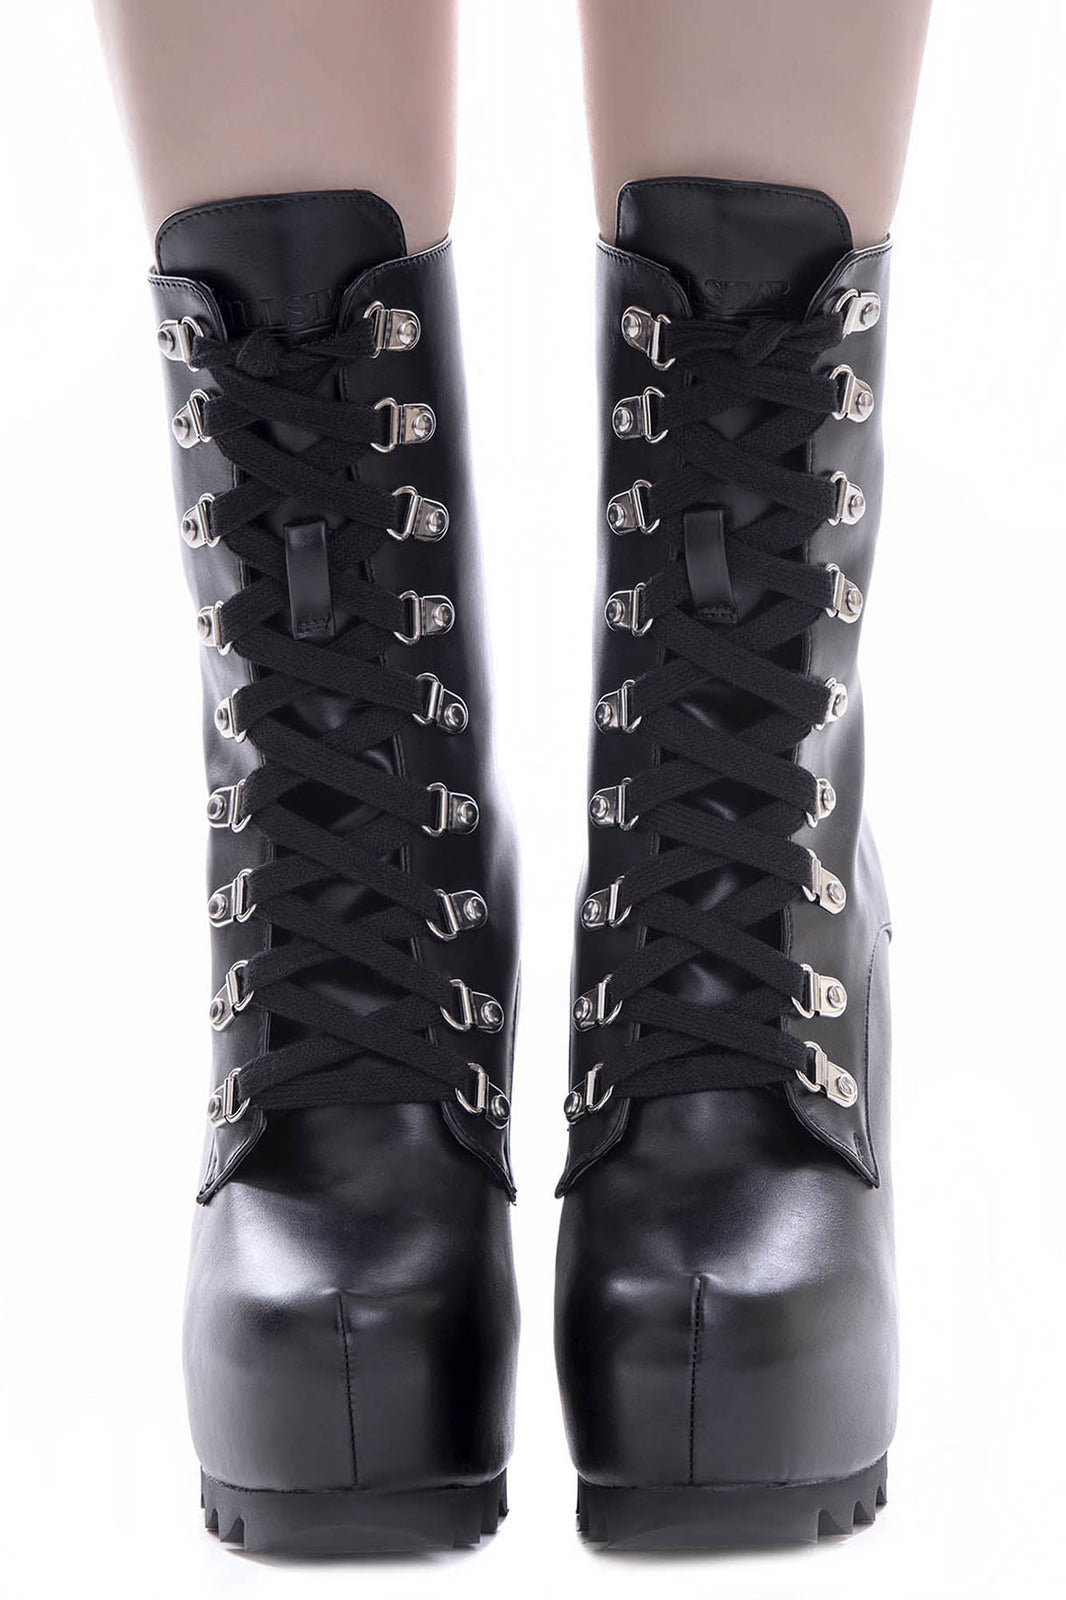 Banishment Boots